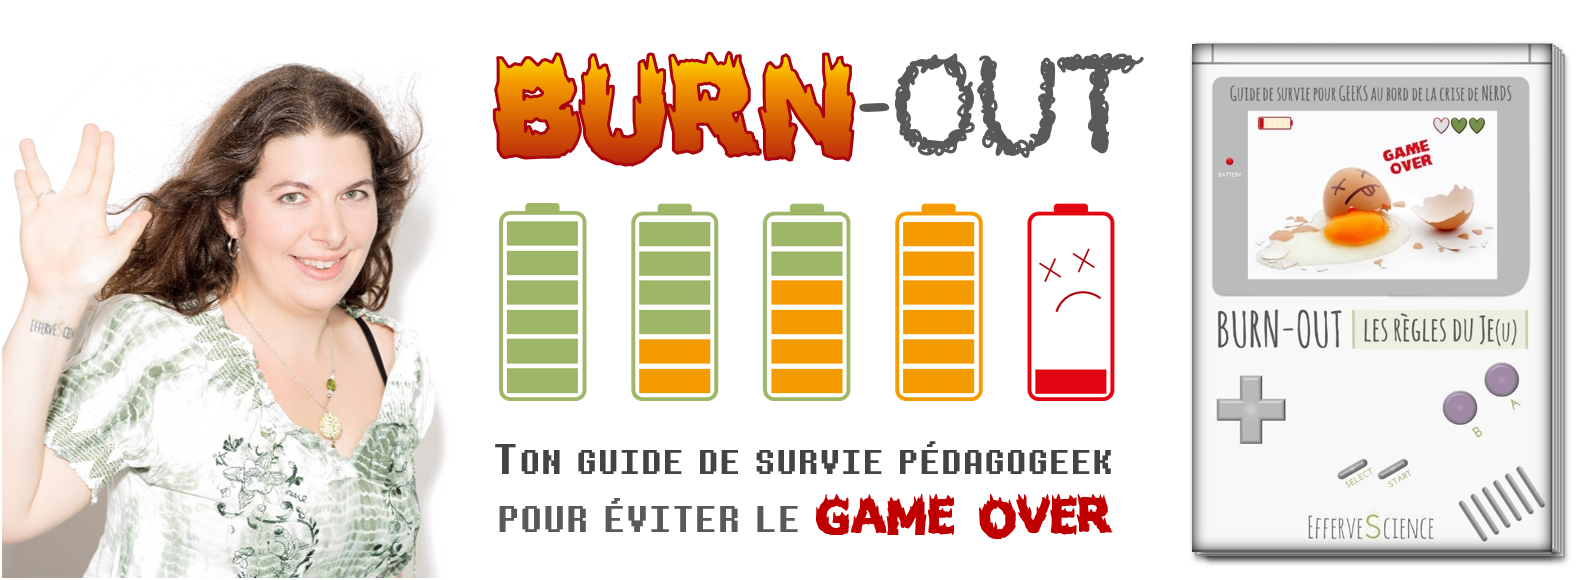 Burn-out is coming : Stress Fighters VS Working Deads, les règles du Je(u)